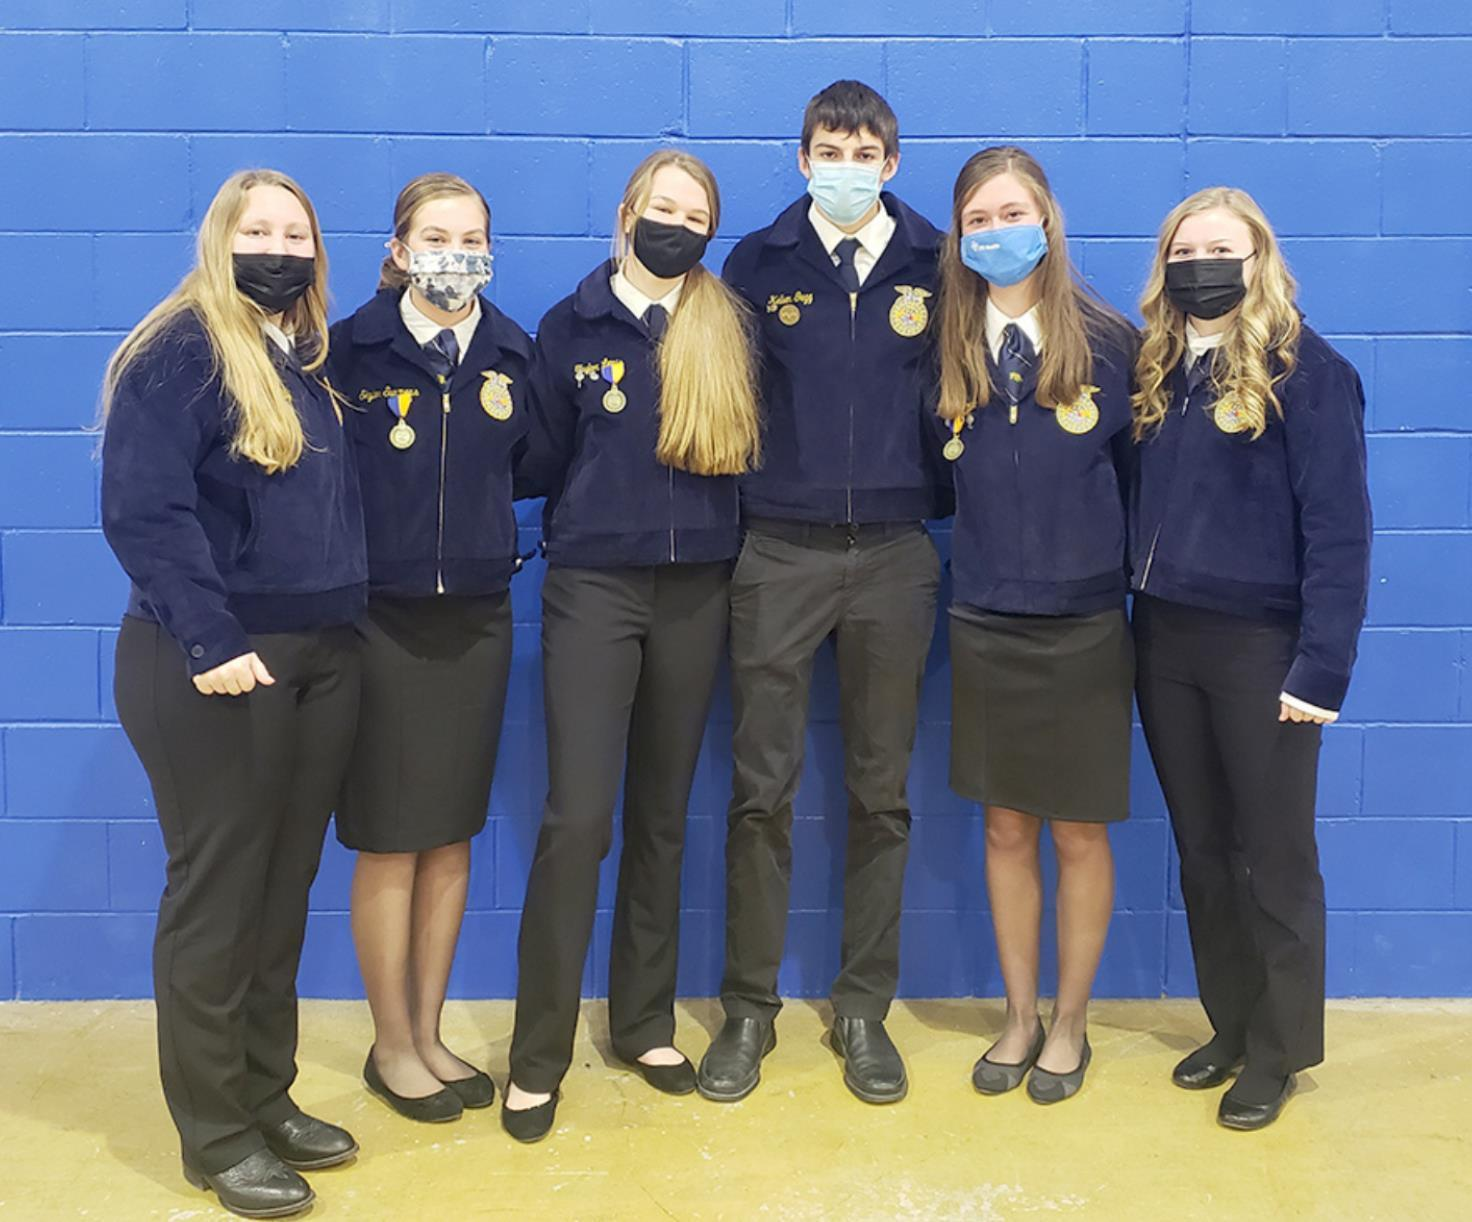 Members of Shelton FFA Senior Parli Pro Team that competed were, left to right, Jett Reilly, Skyler Summers, Taylor Lewis, Kellen Gegg, Jaylea Pope, and Brianna Simmons. (–courtesy photo)